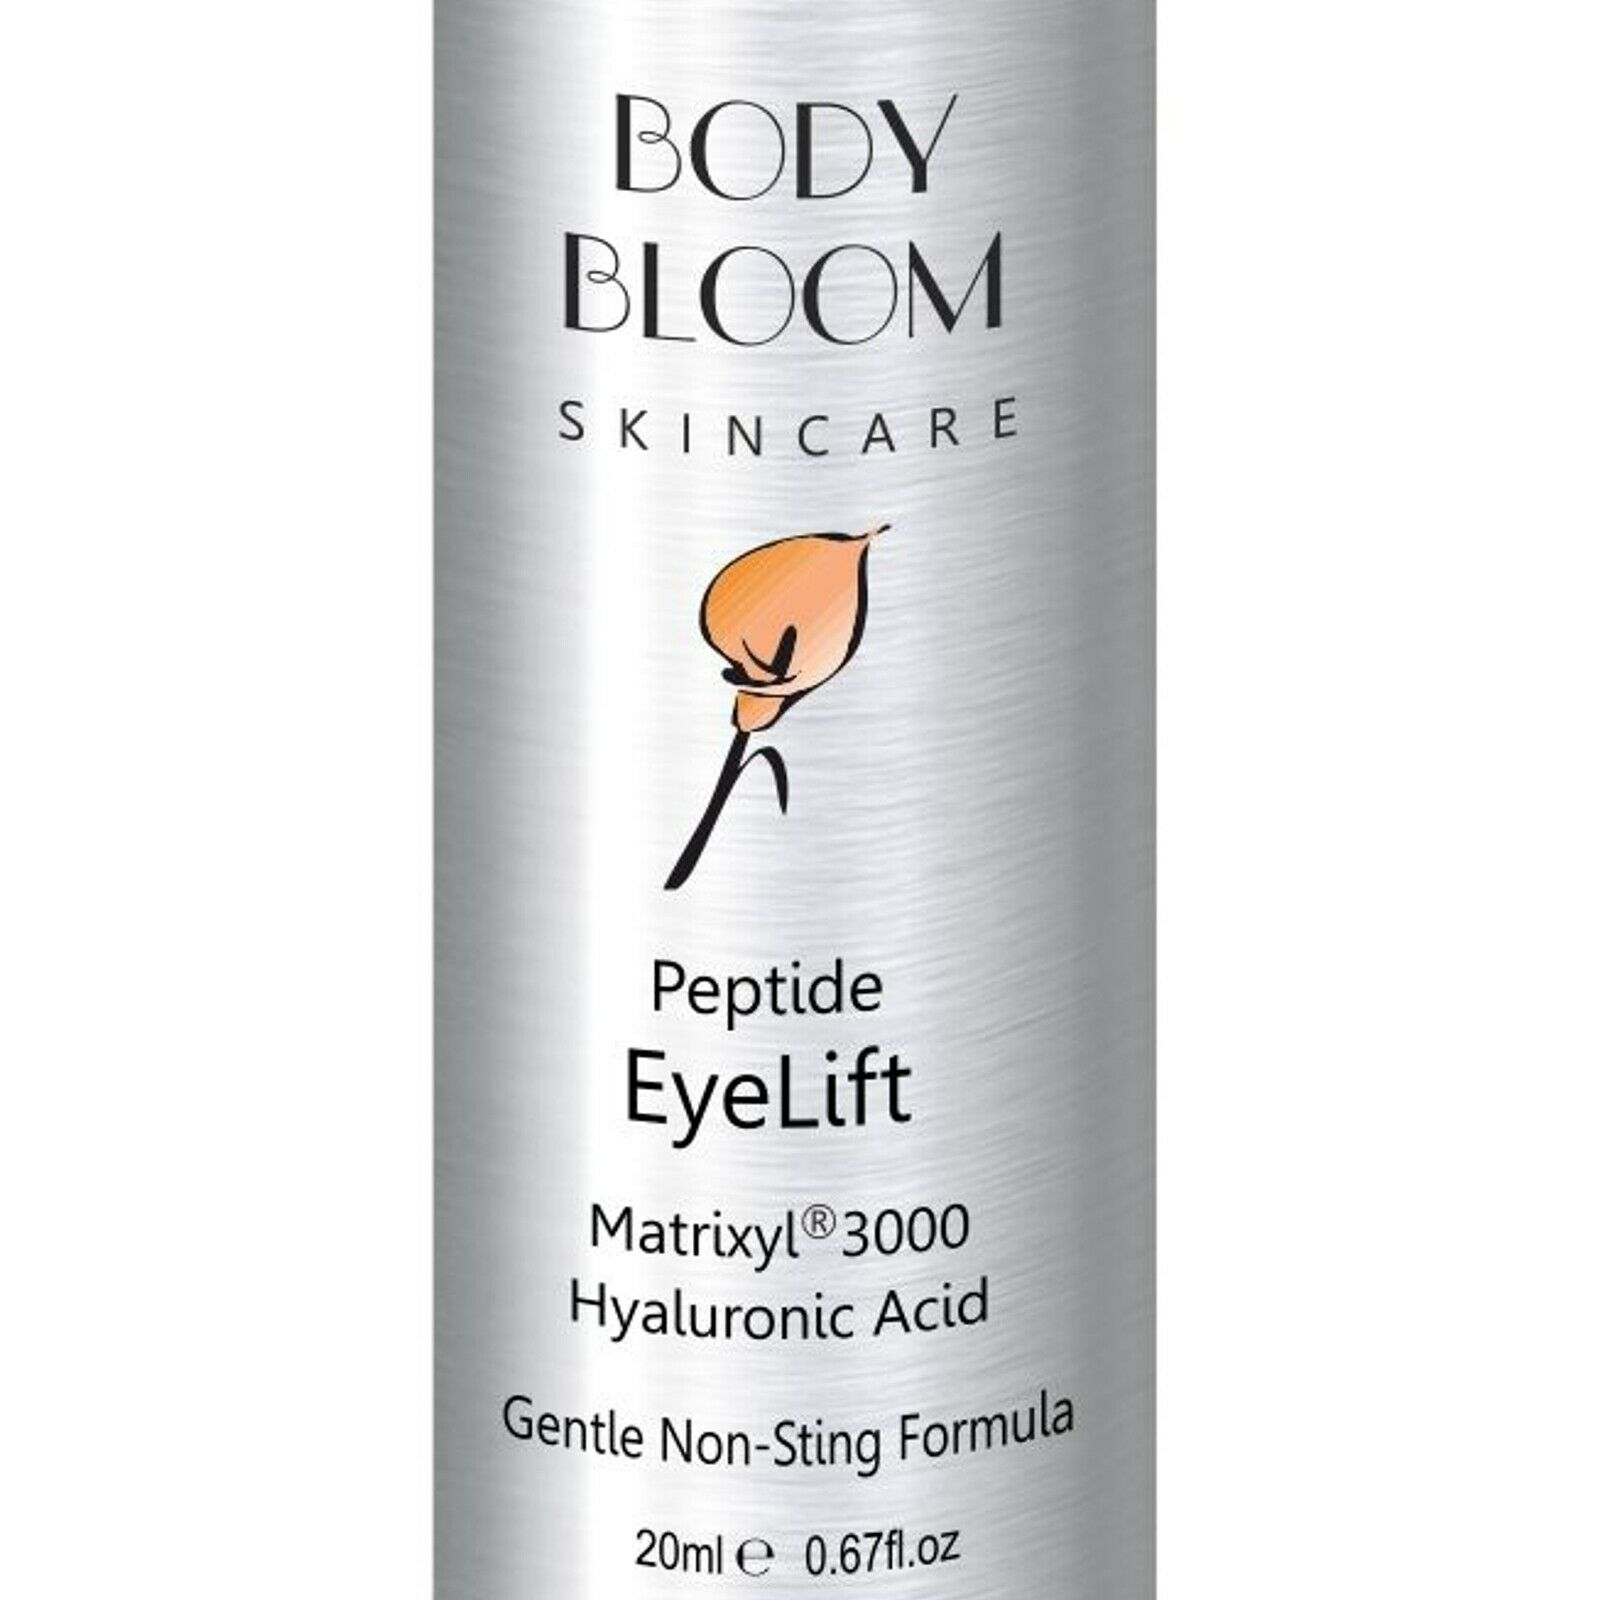 Gentle Eye Lift Cream Anti Wrinkle Hyaluronic Acid Vitamin E Aloe Matrixyl 3000